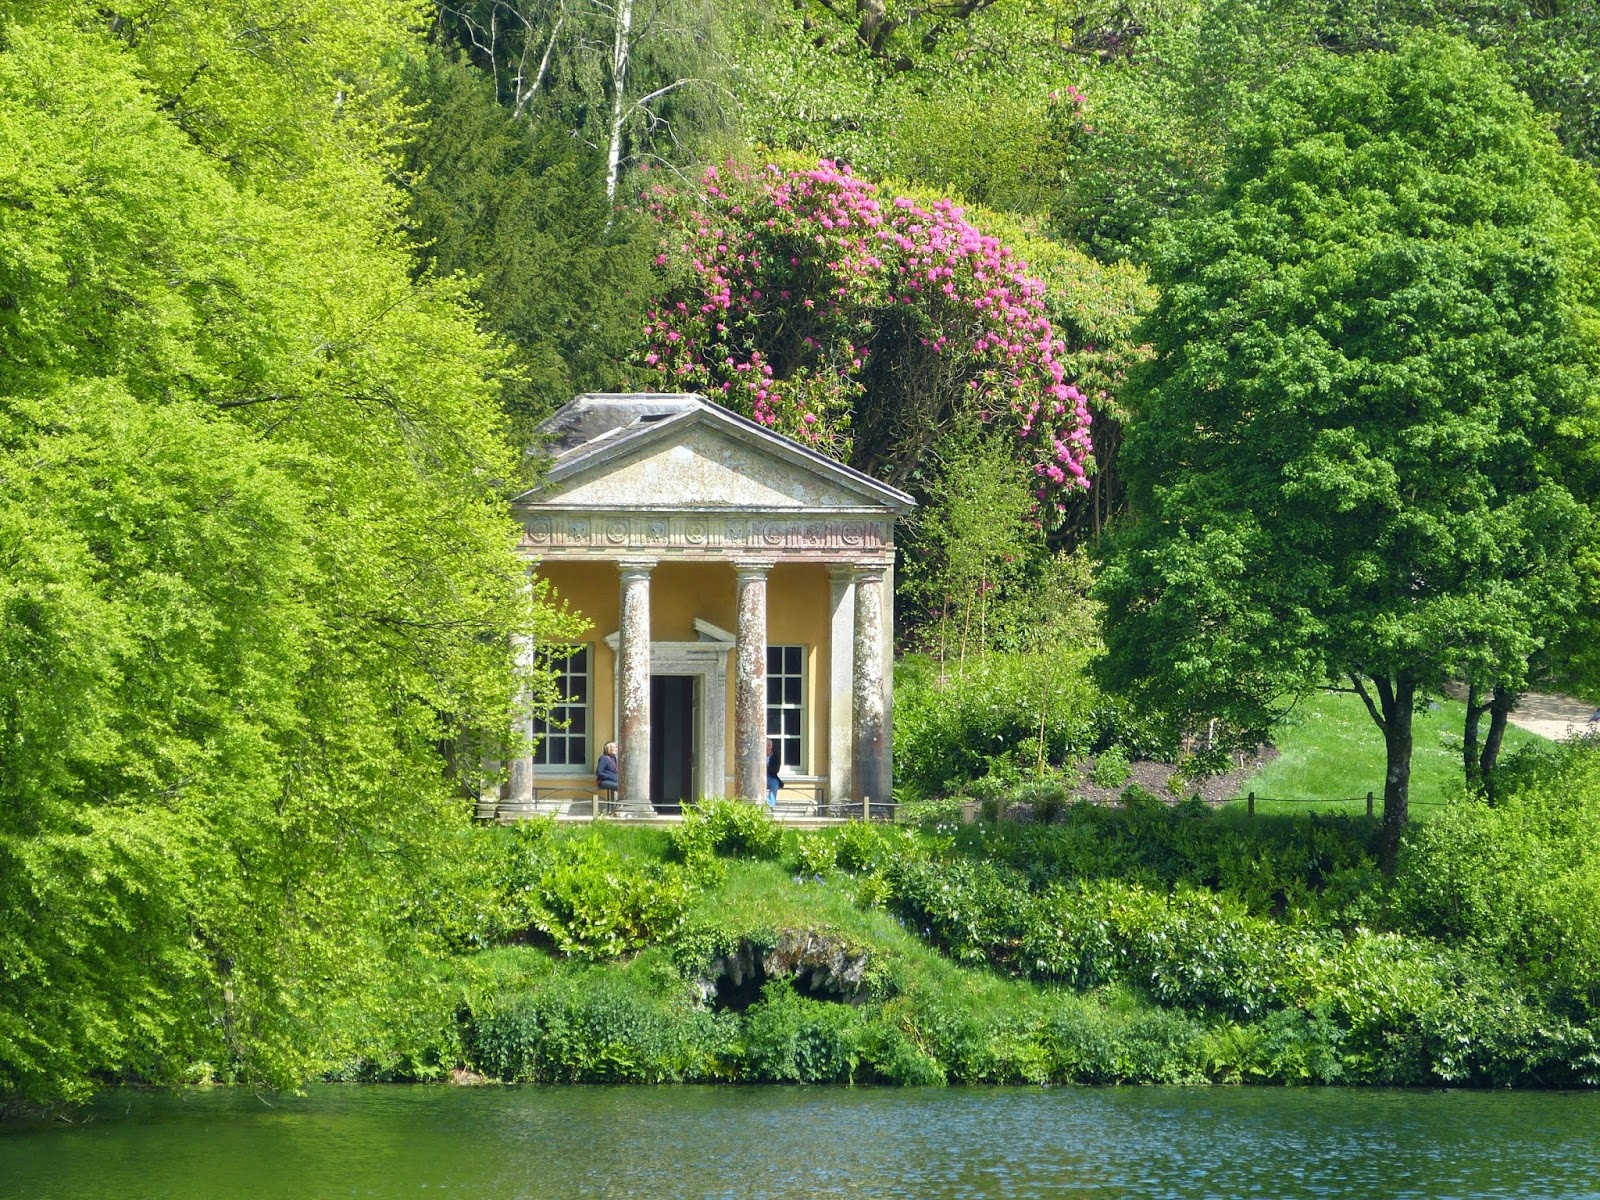 Temple of Flora, Stourhead